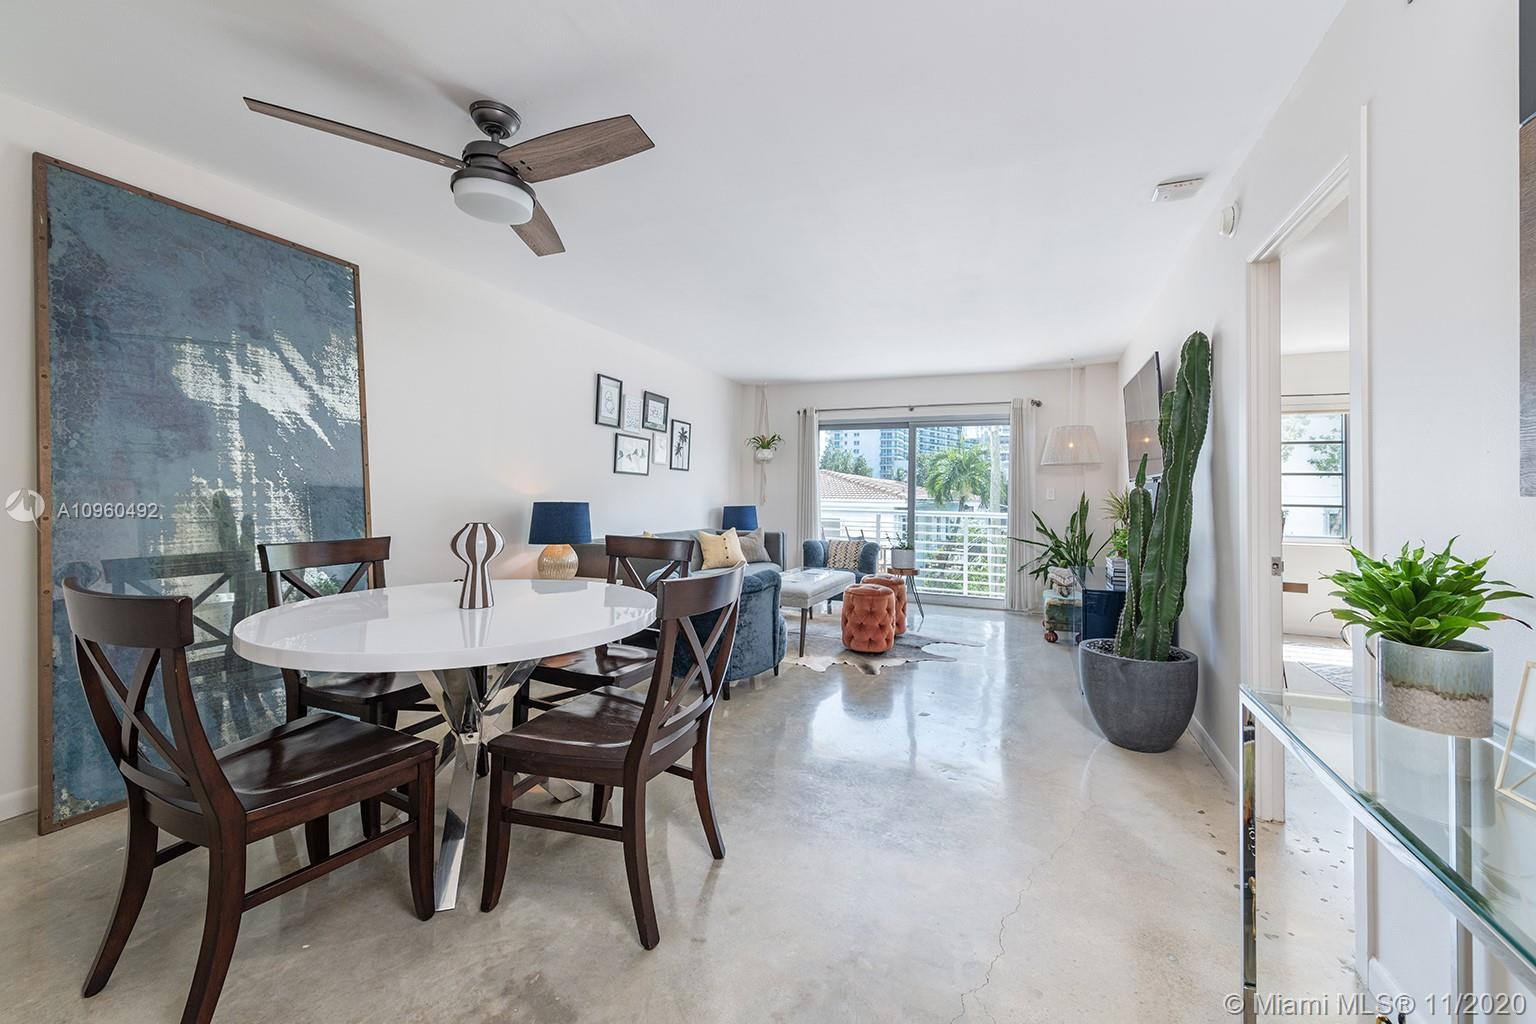 Live on Lincoln Road in a well-designed, spacious unit in the best location on South Beach! Same own